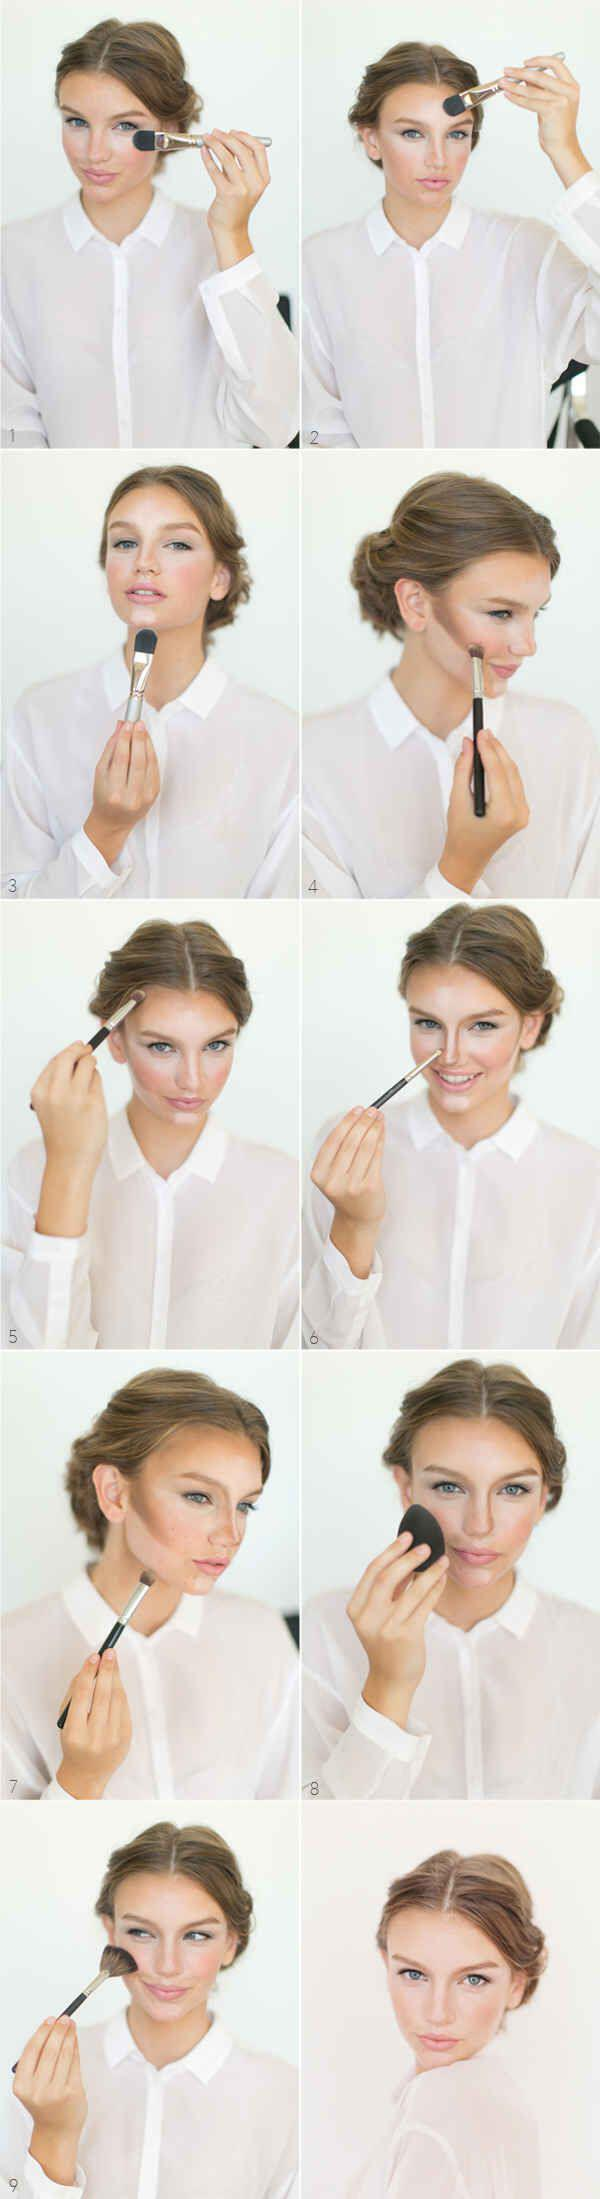 fashionable-ideas-new-years-eve-makeup